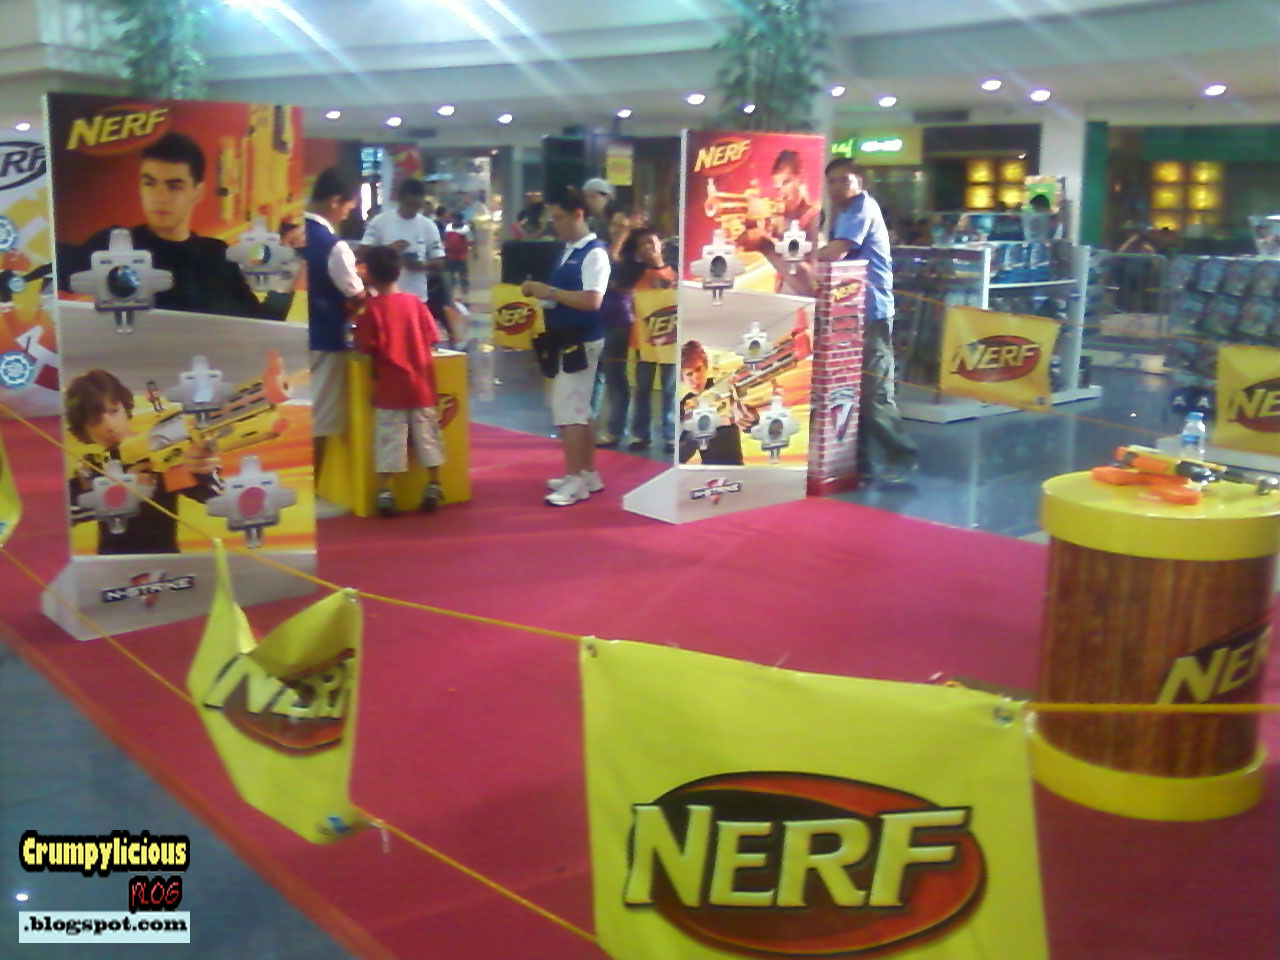 Games to Play with Nerf http://pointblankplay.blogspot.com/2011/06/nerf-games-and-contest-toys-r-us-event.html